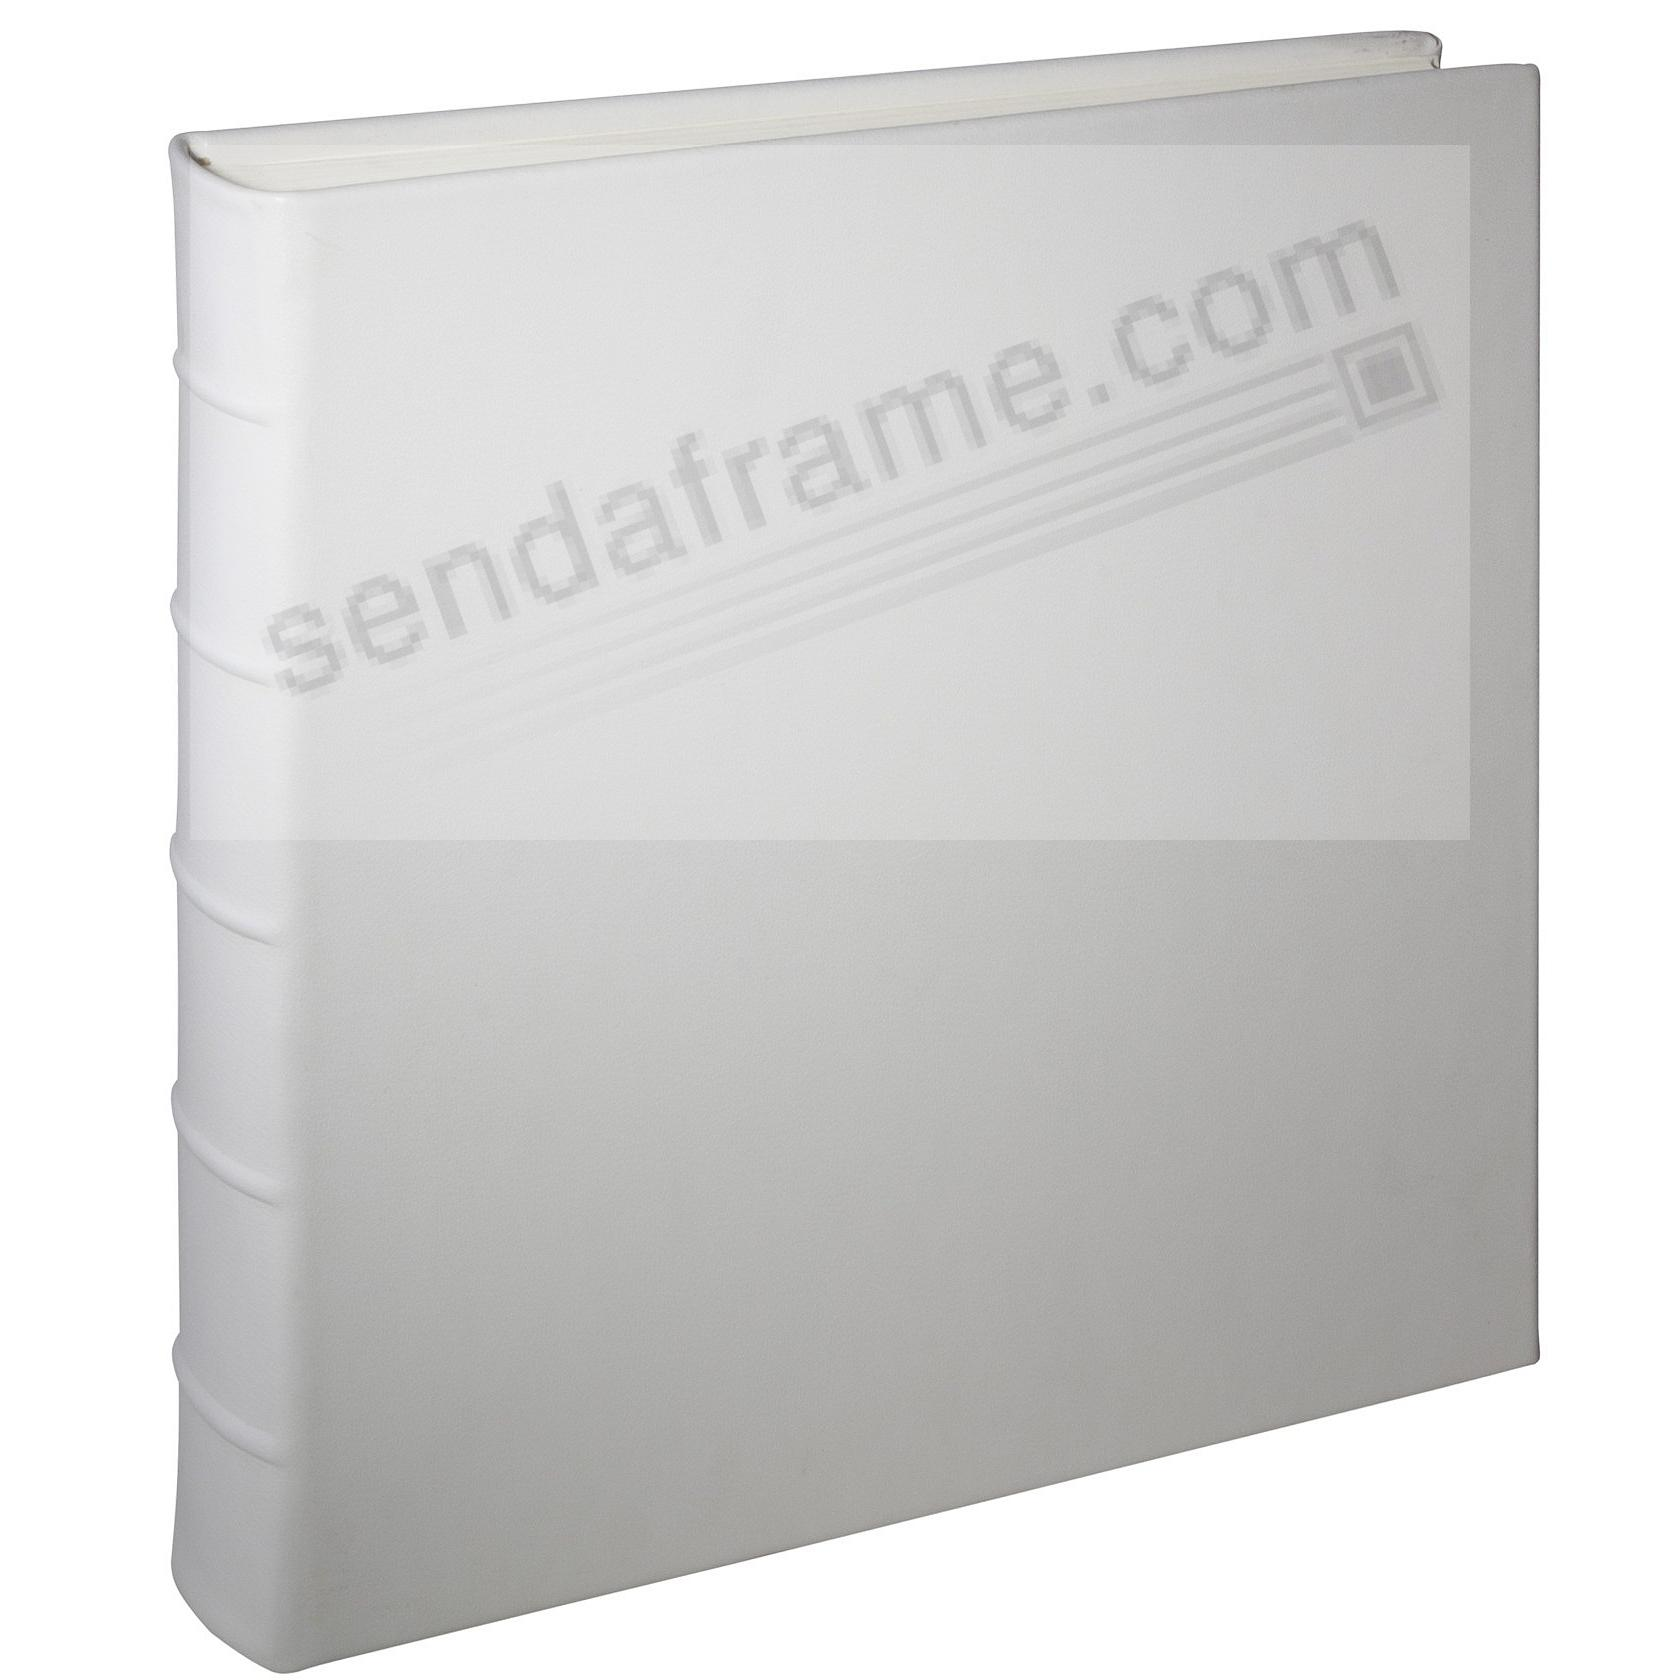 Wedding-White Leather Bound (Large) 13x13 Album<br>by Graphic Image&trade;